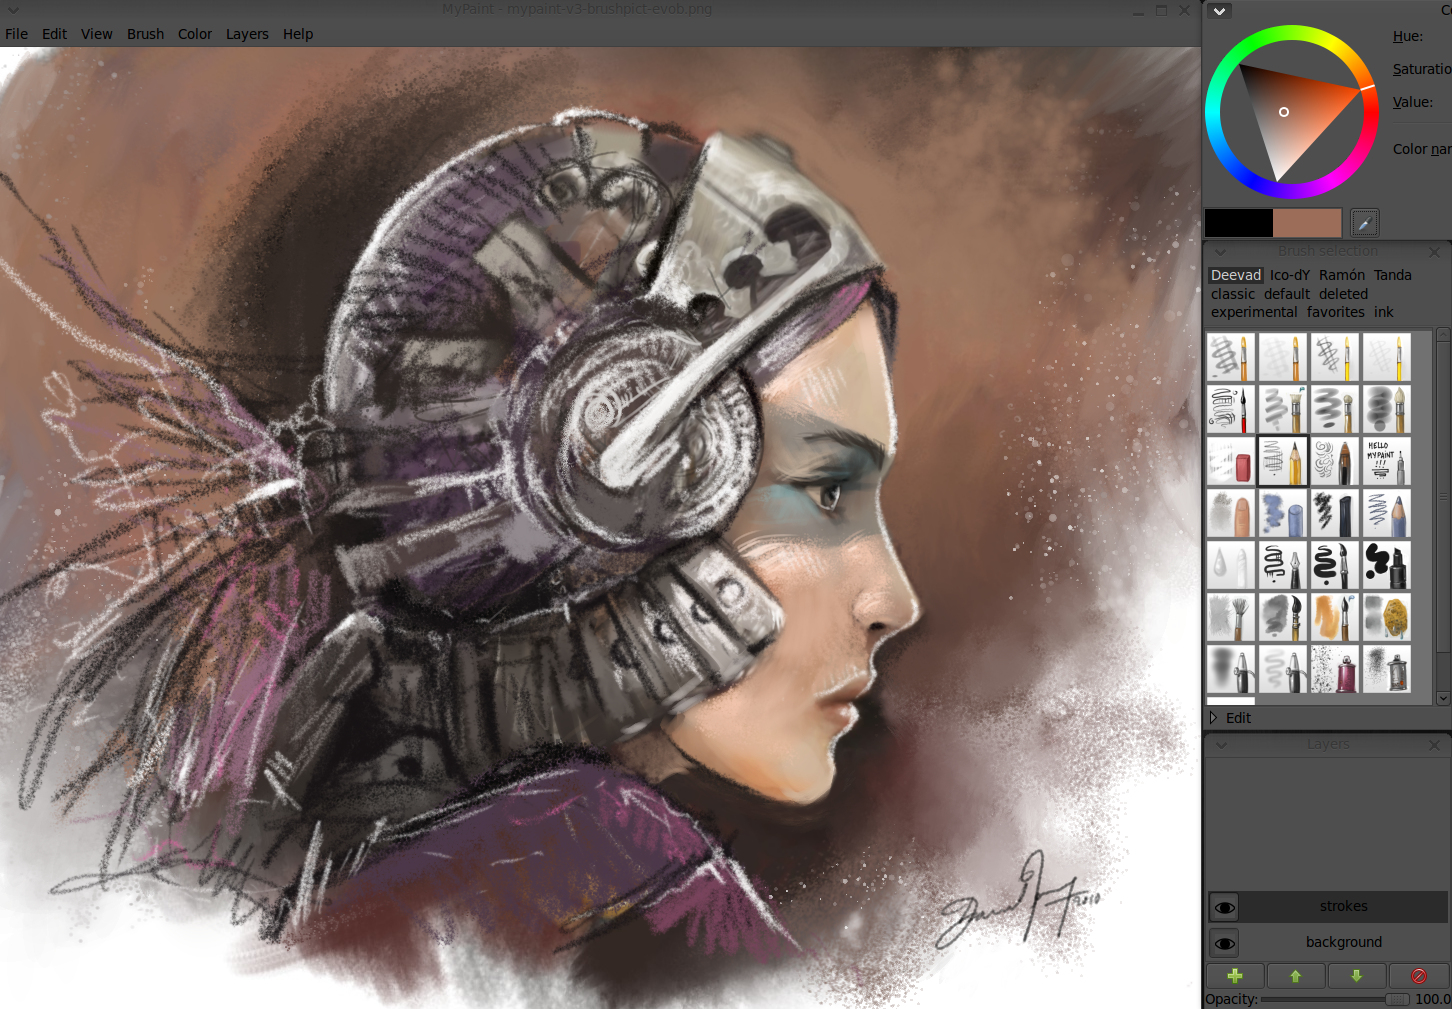 One of David's MyPaint screenshots to introduce his V.3 brushkit